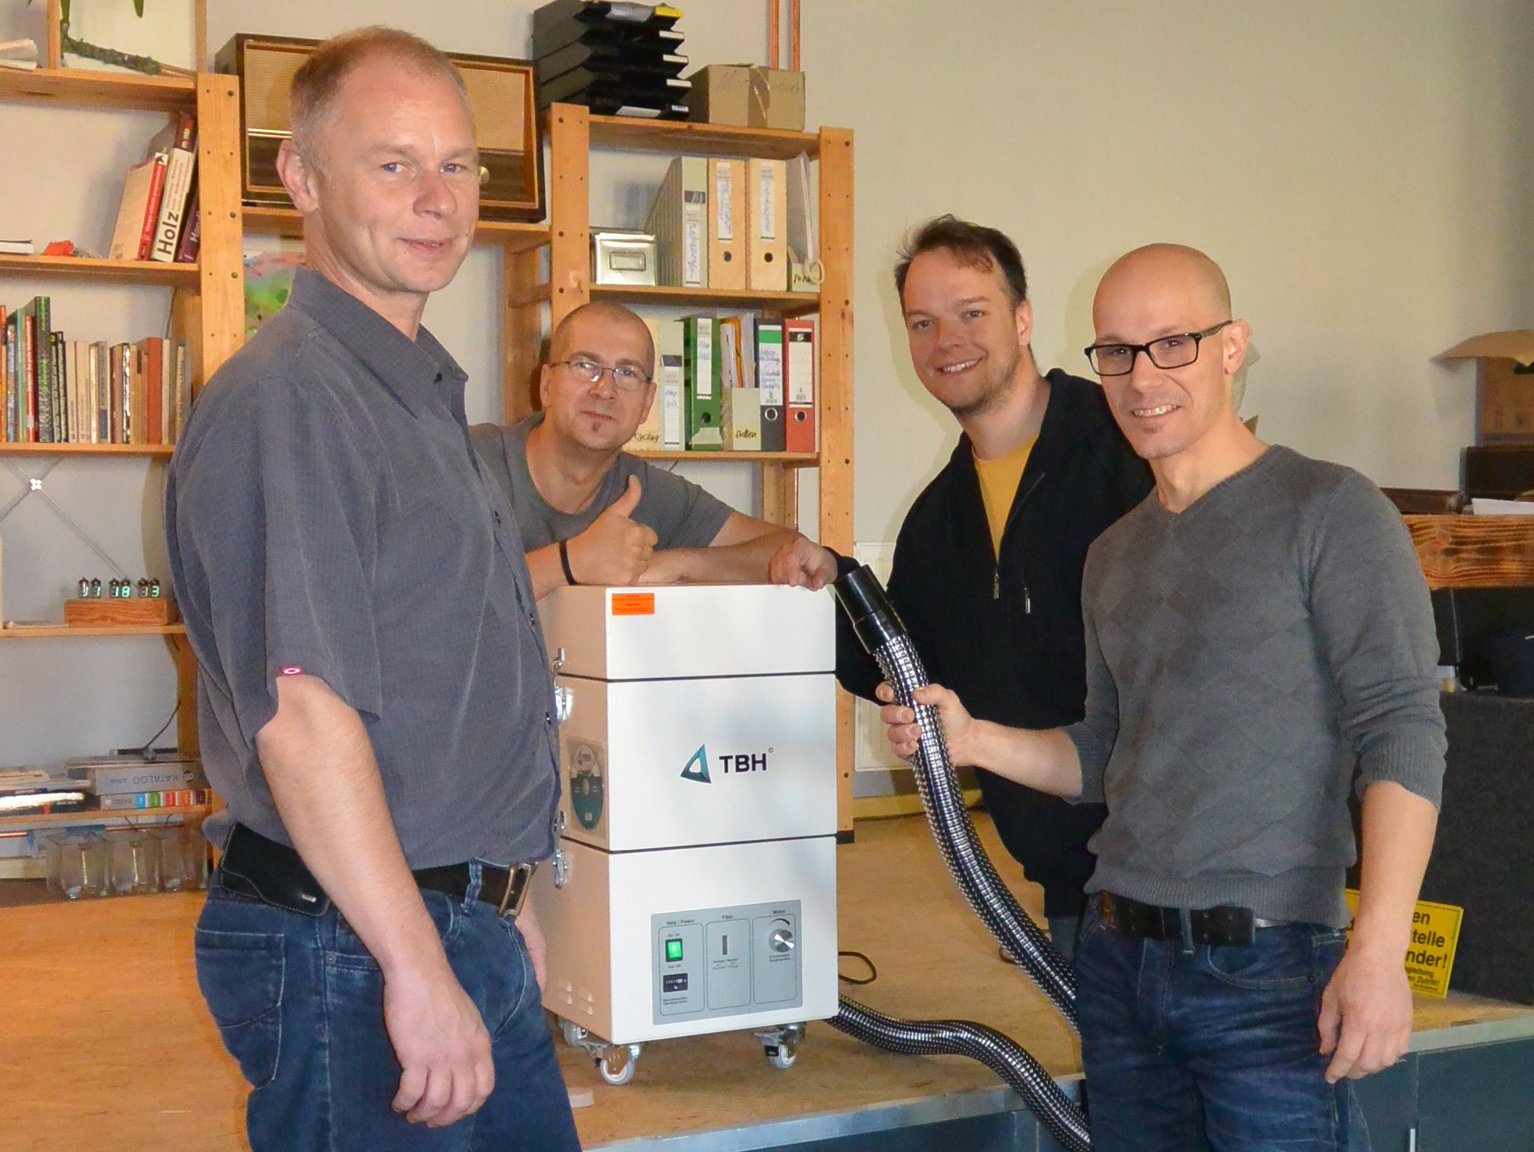 TBH GmbH donates an extraction system to Makerspace Leipzig